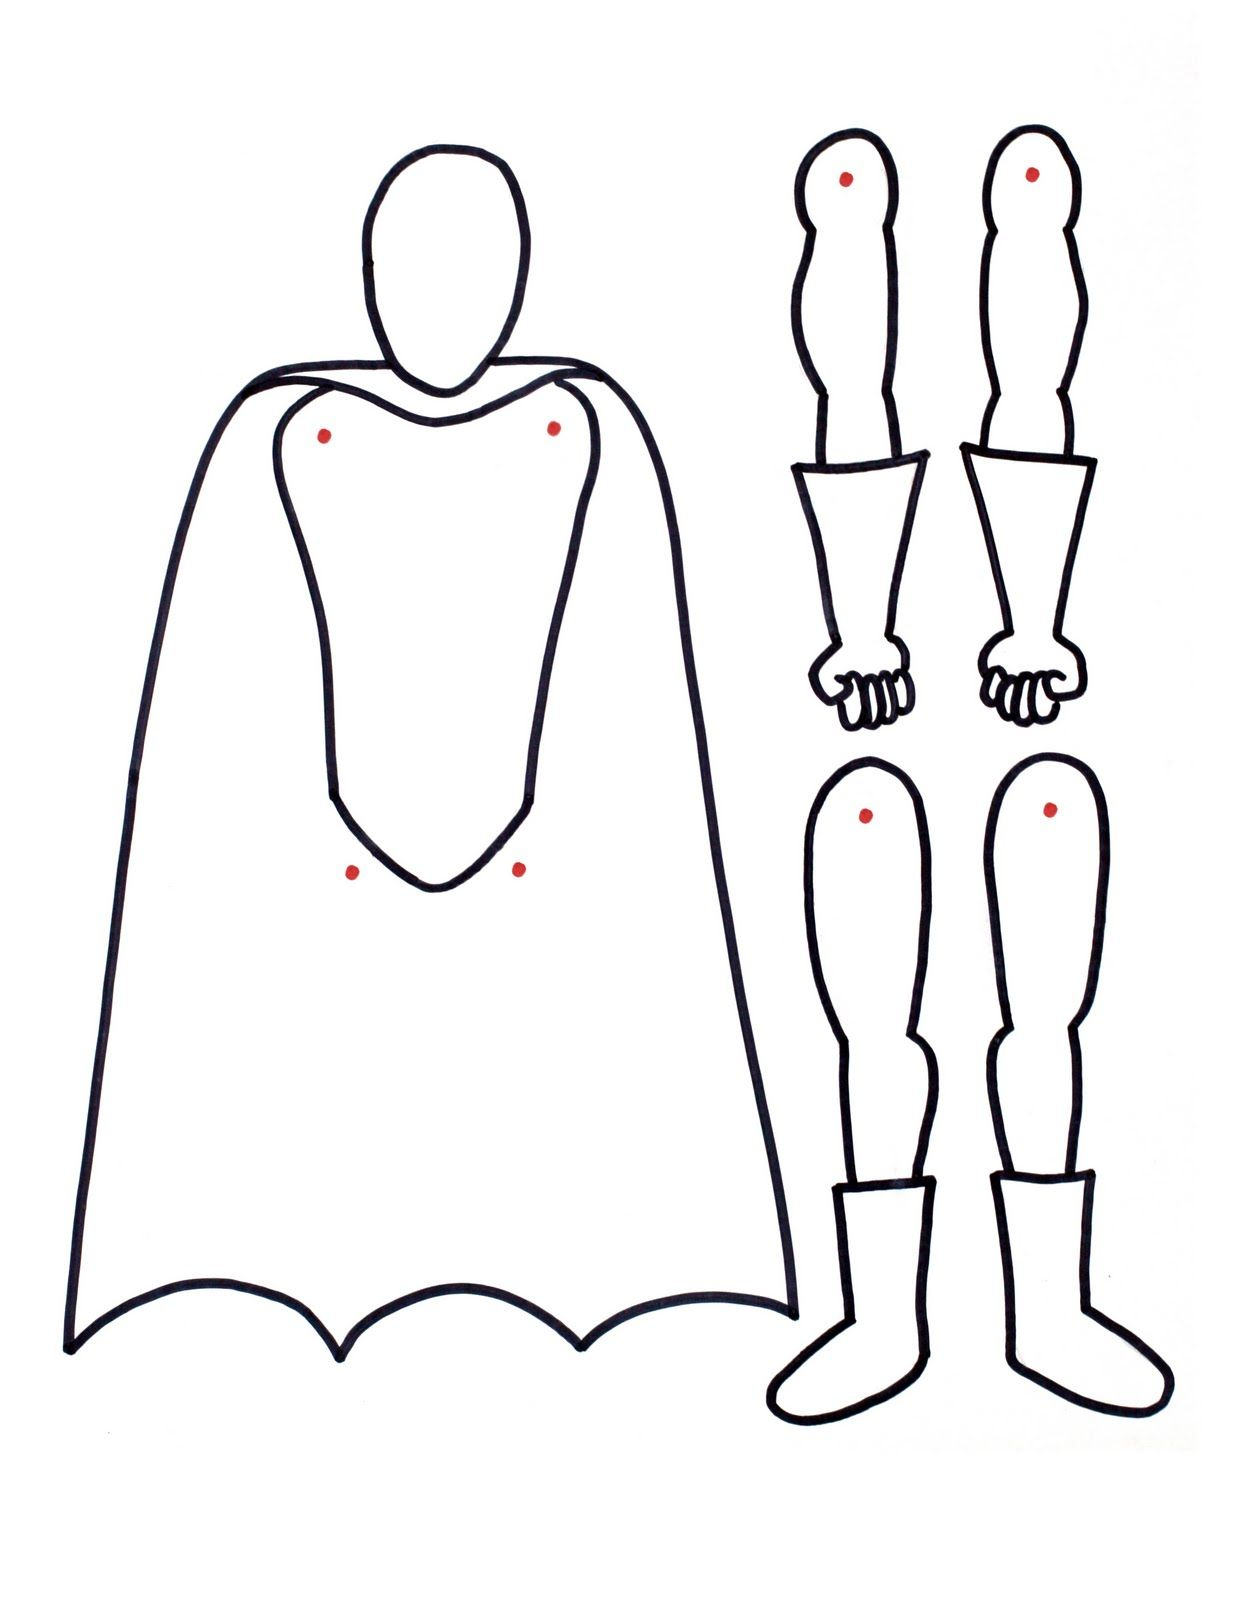 Superhero Printable With Movable Arms And Legs Paper Doll Color And